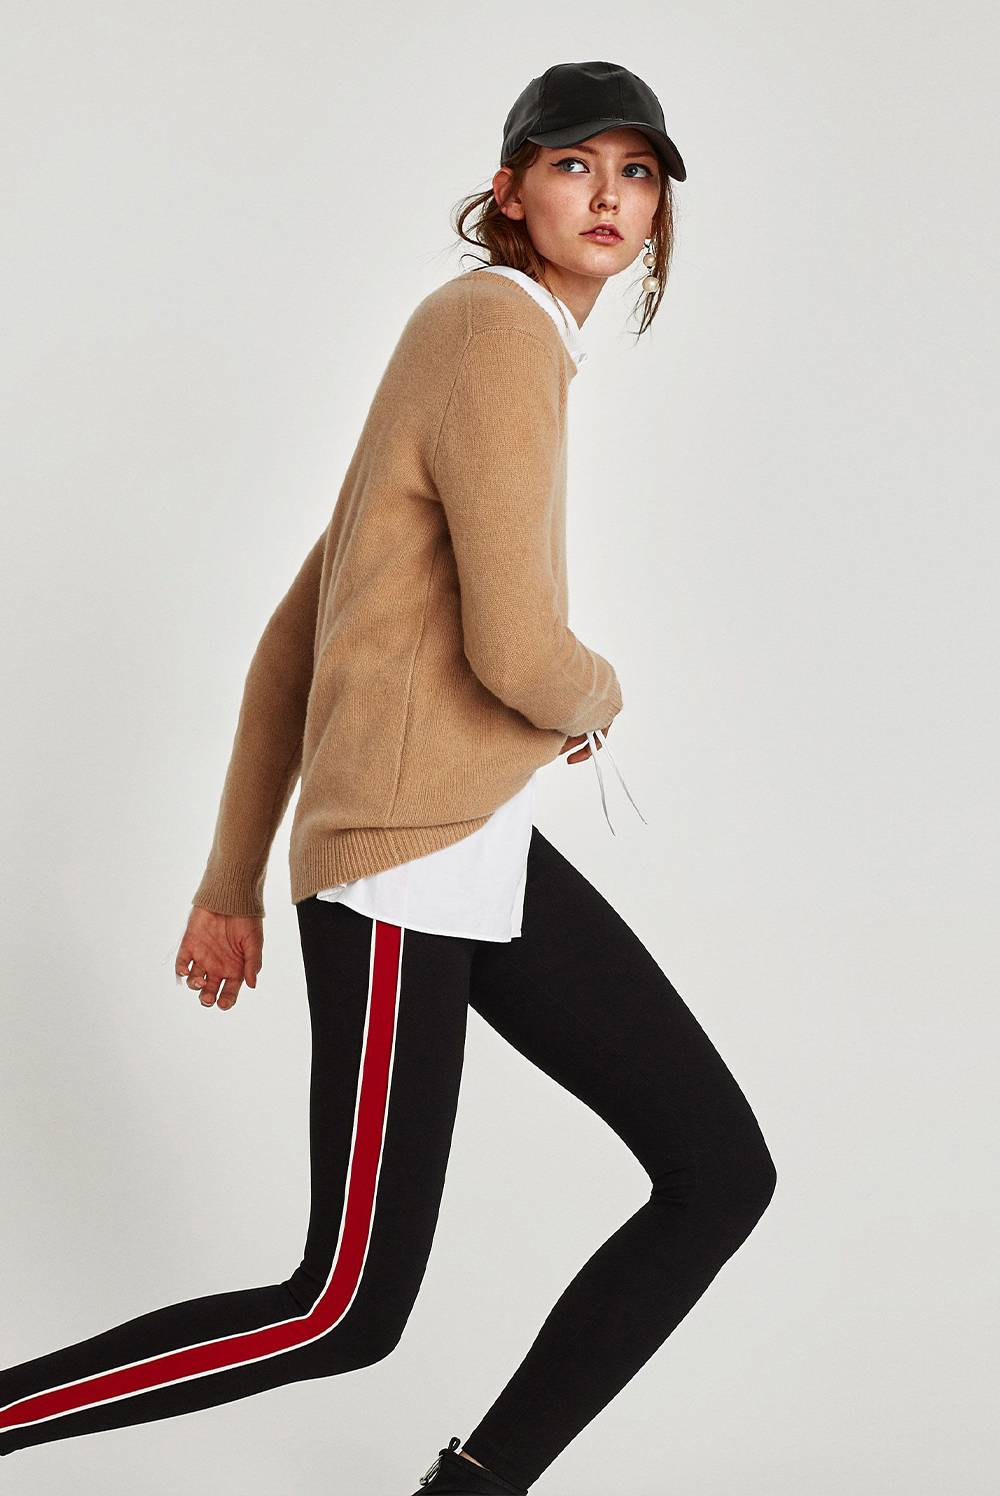 Black Leggings With Red Piped Side Stripes J5 Fashion